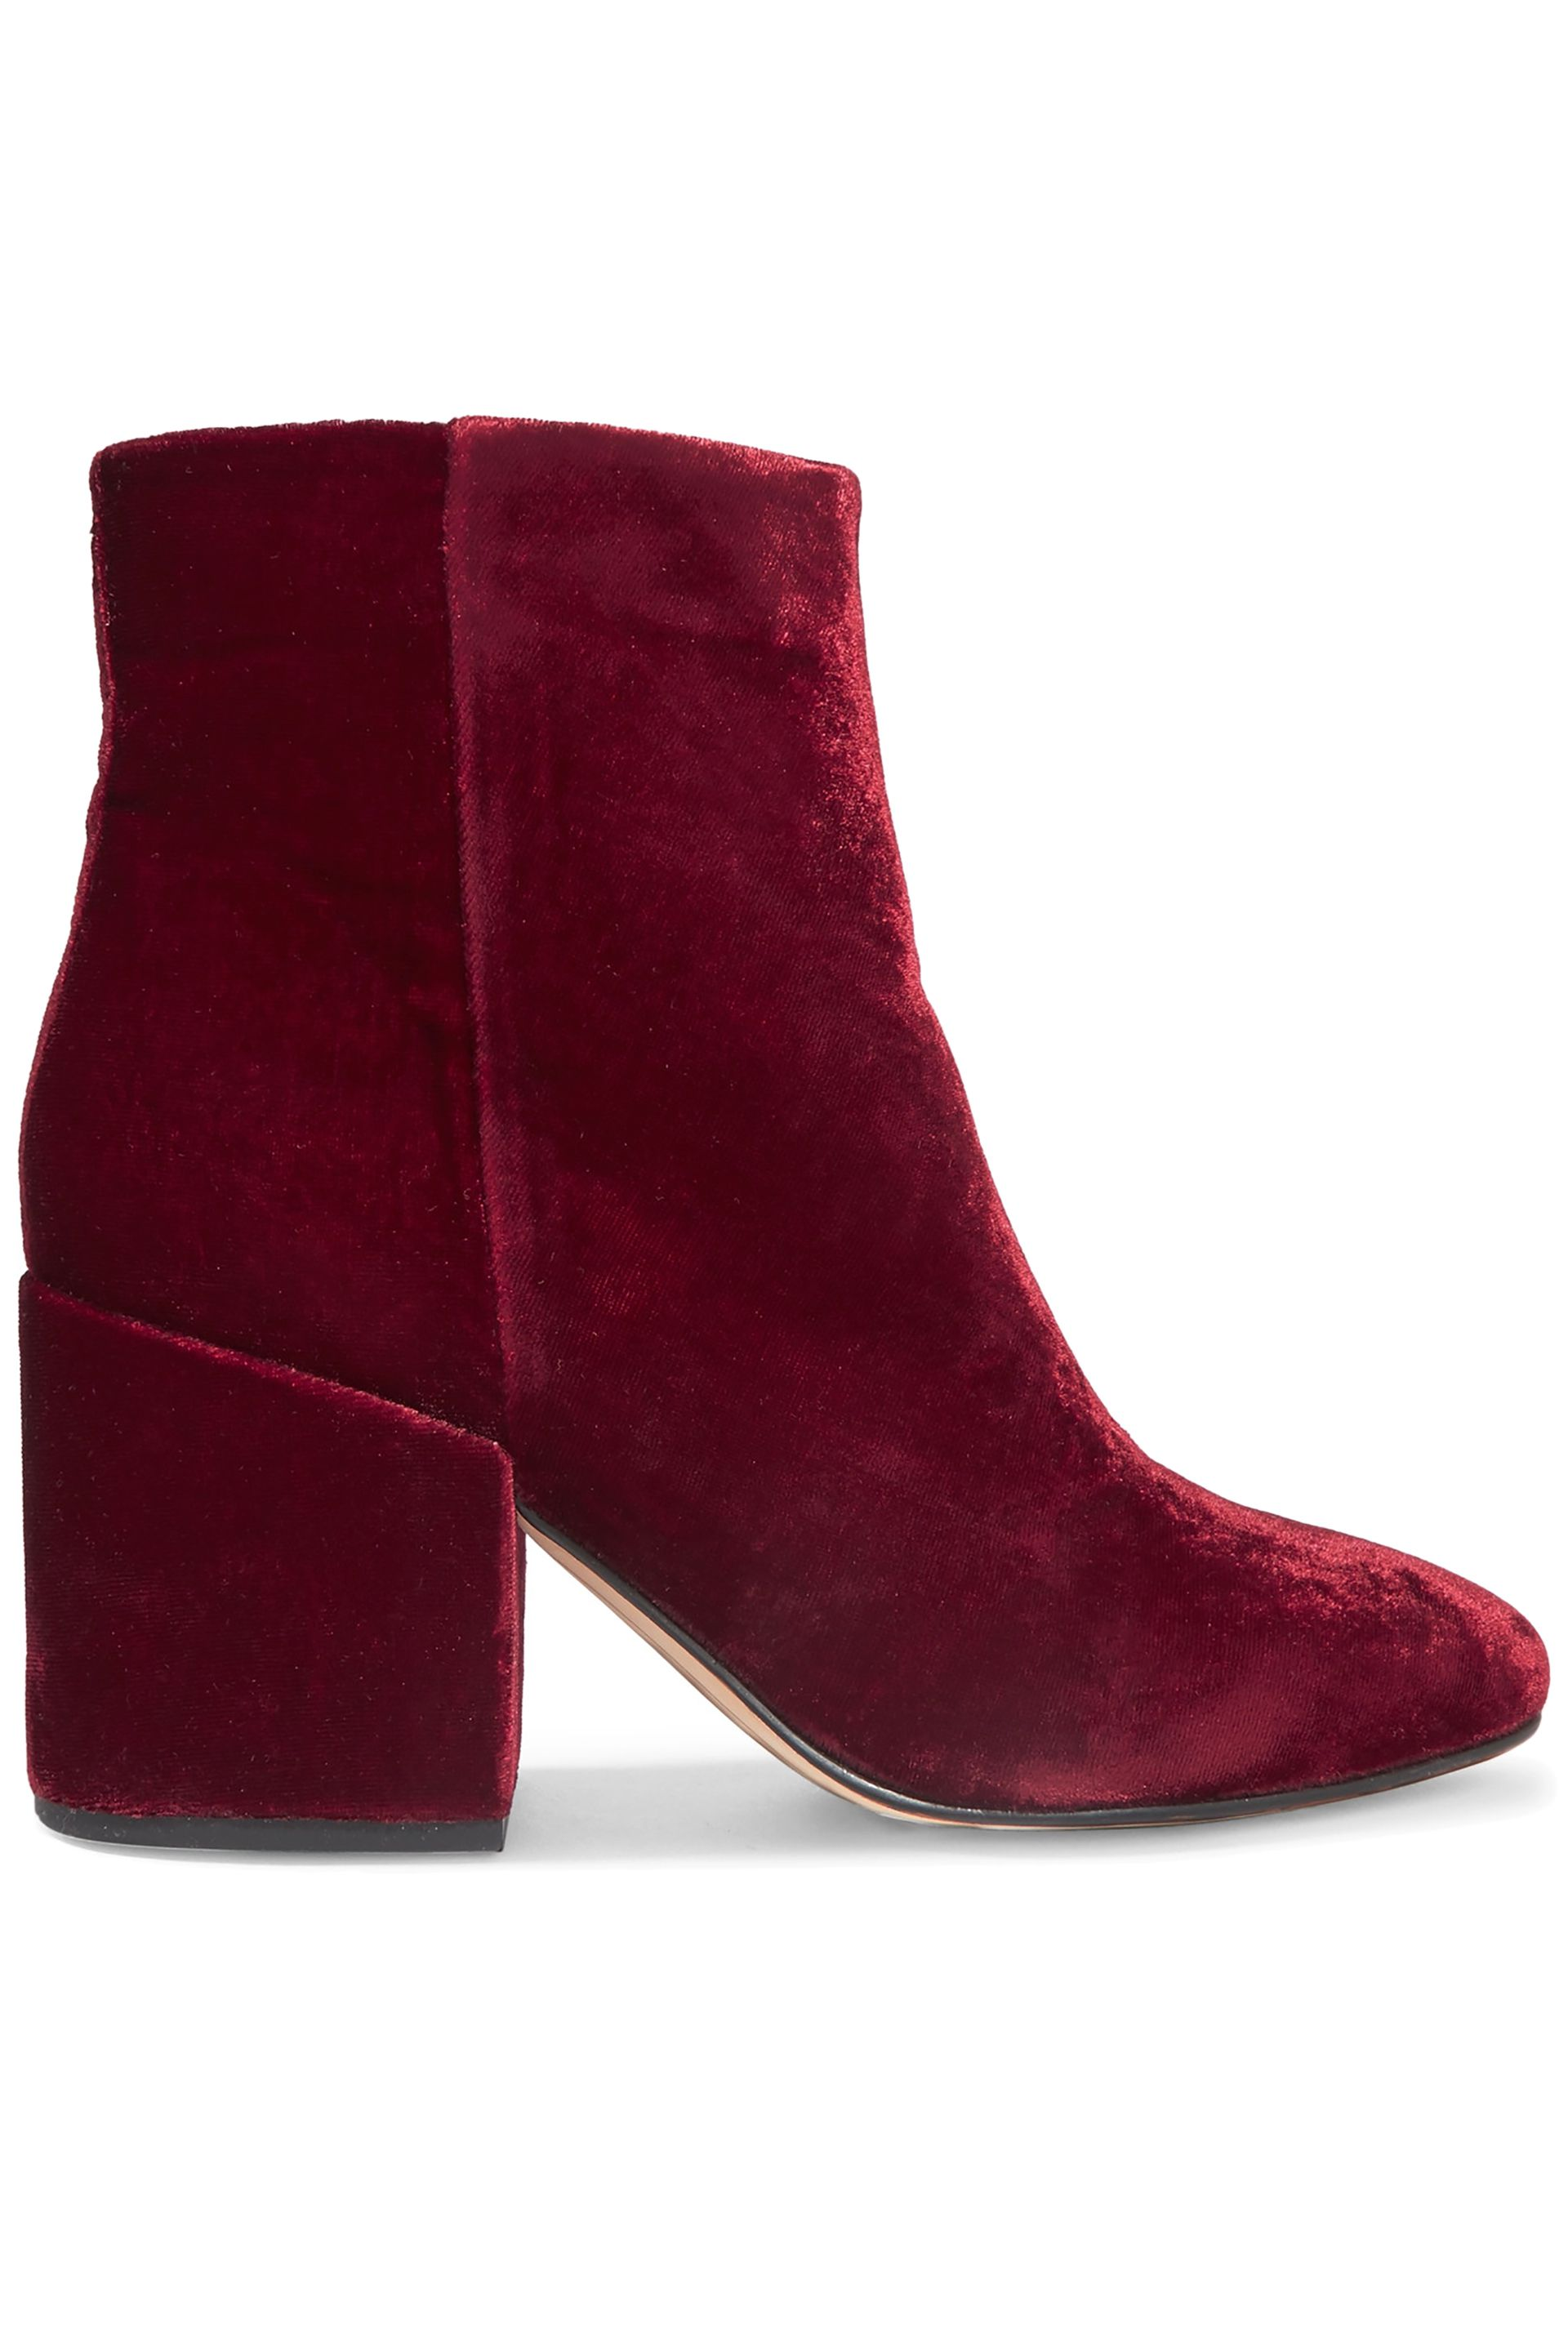 6727ea43b Shop Sam Edelman Ankle Boots for Women - Obsessory